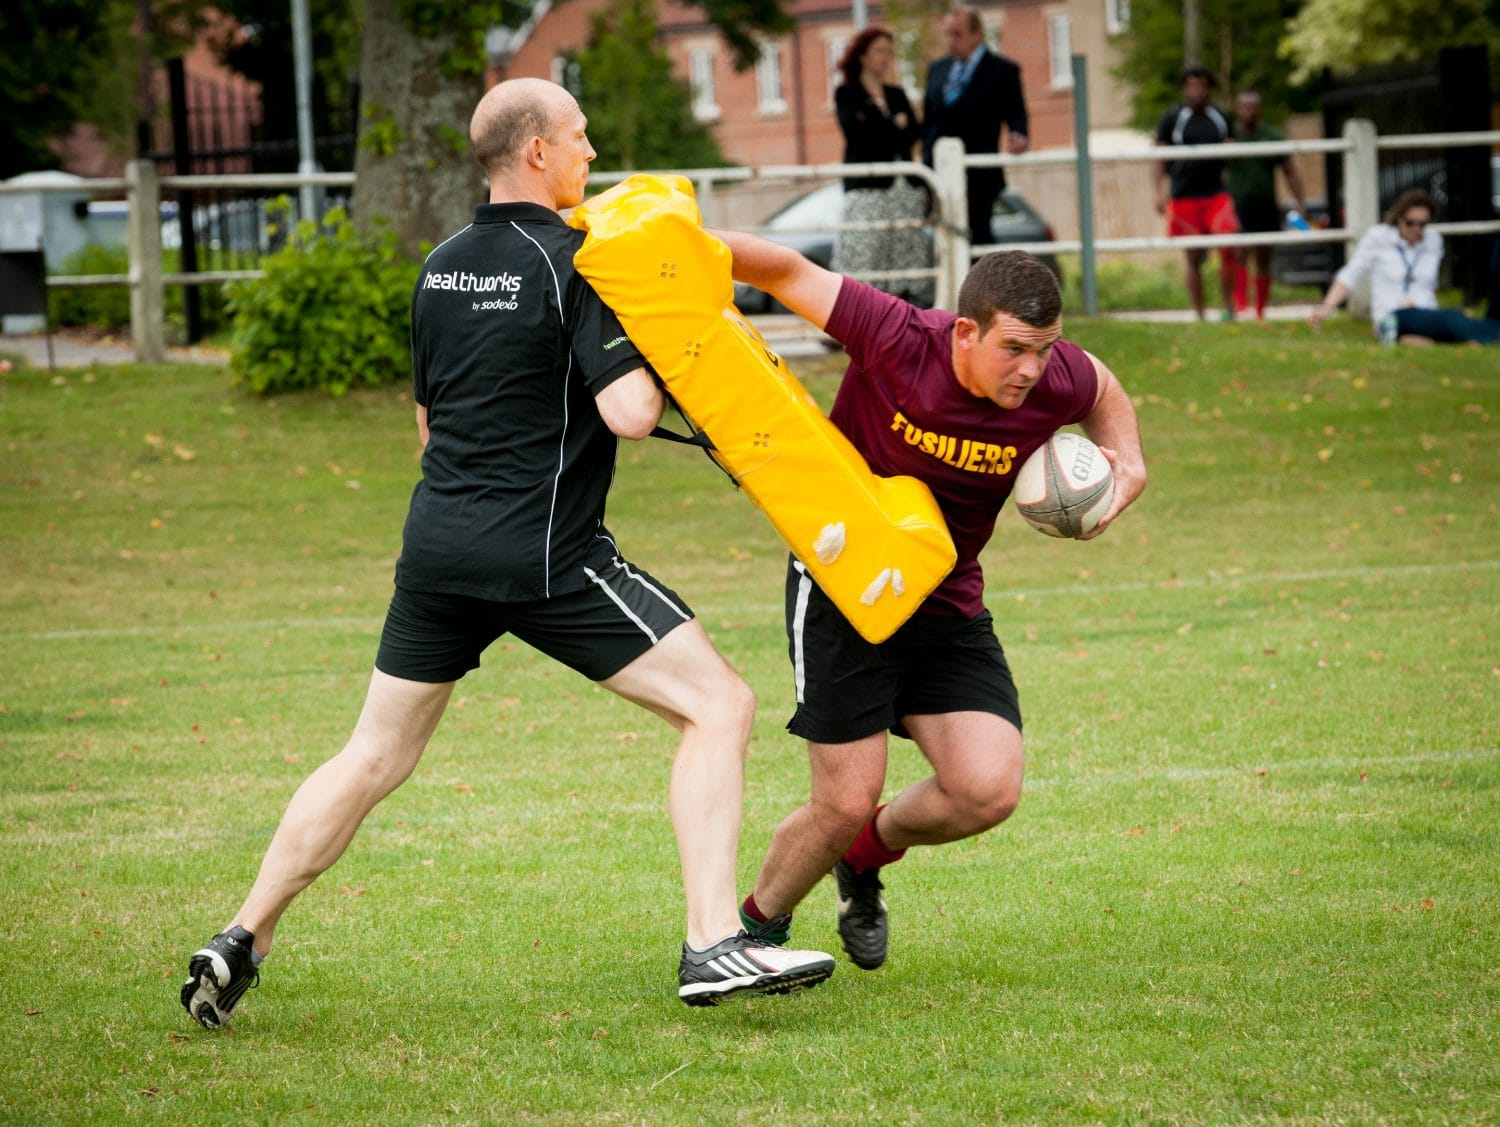 Matt Dawson rugby training with the Royal Fusiliers